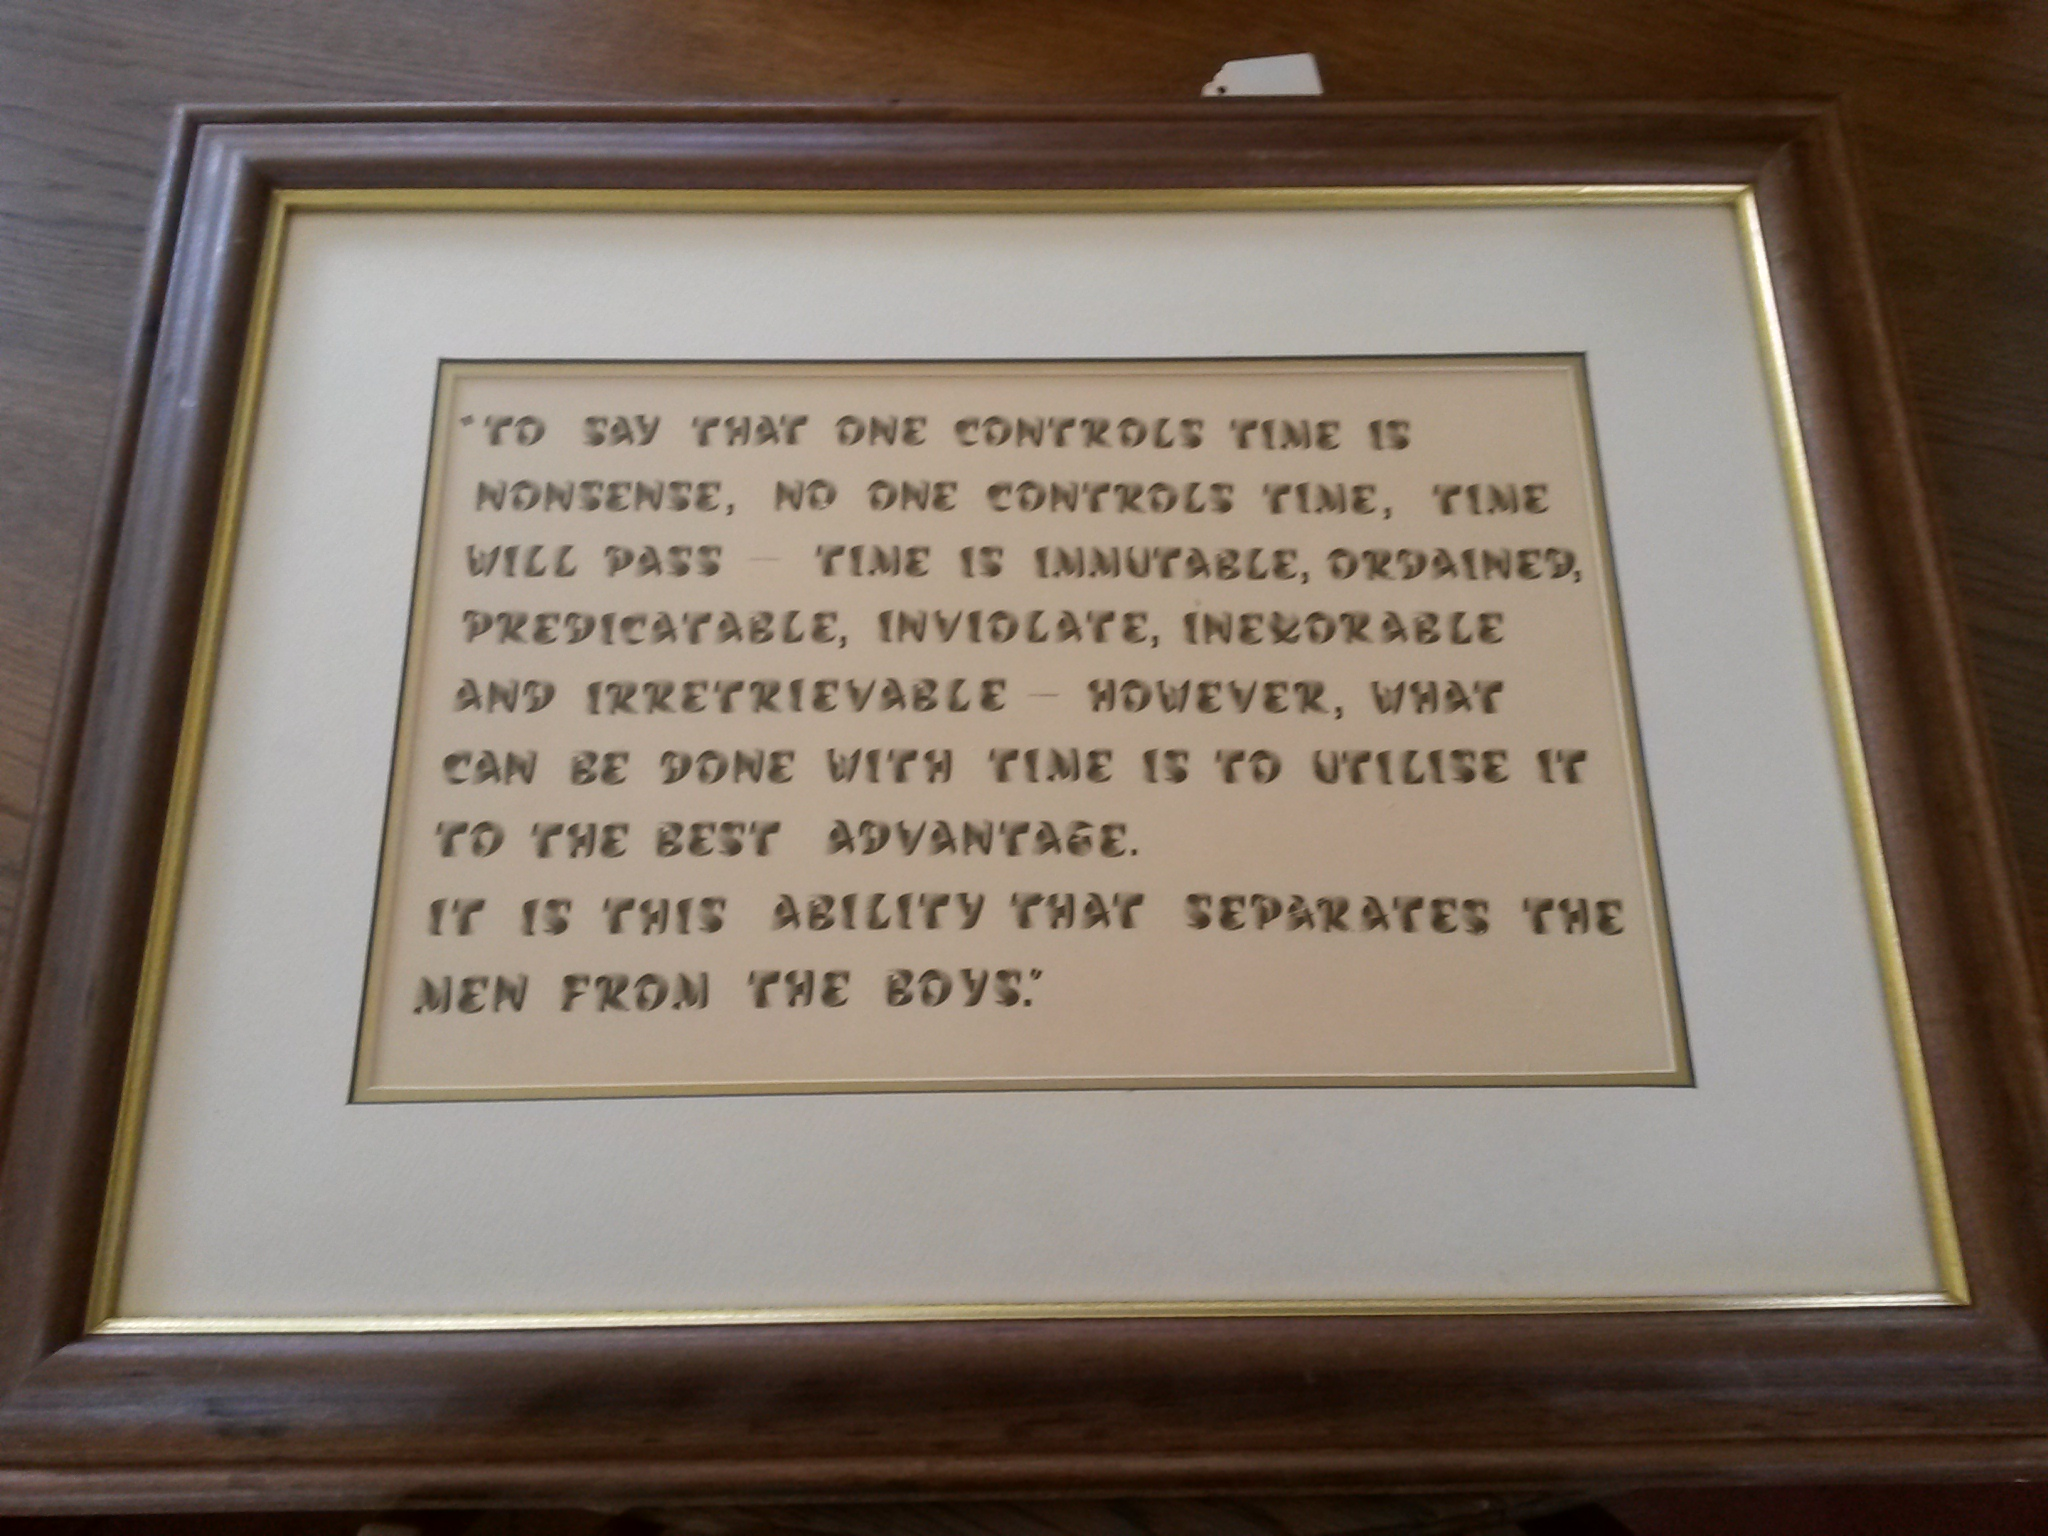 Wooden frame with wording